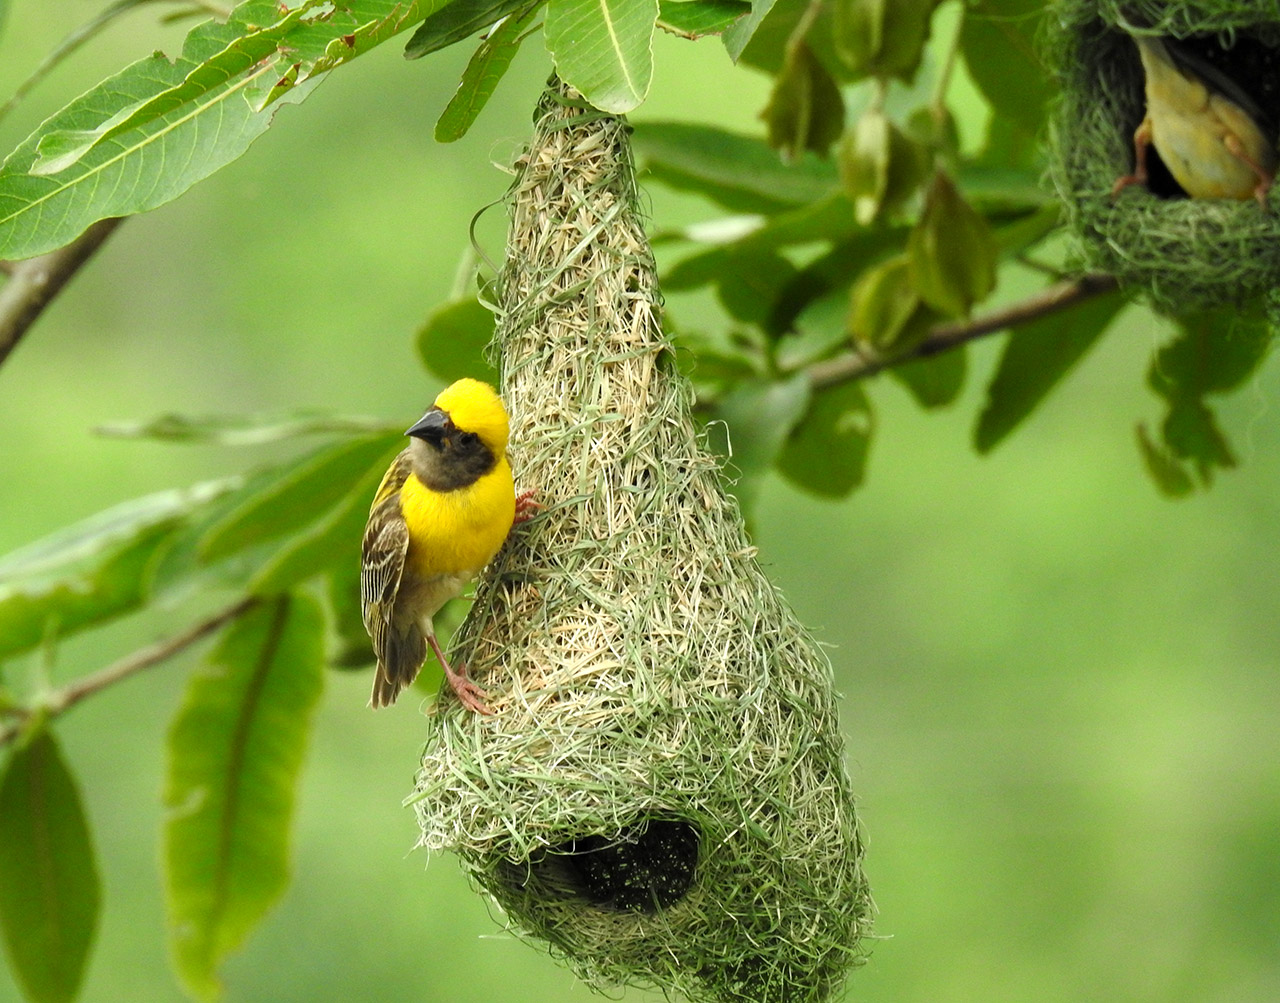 Shraavana,-the-Season-of-Ecstasy-for-Wildlife-Baya-Weaver